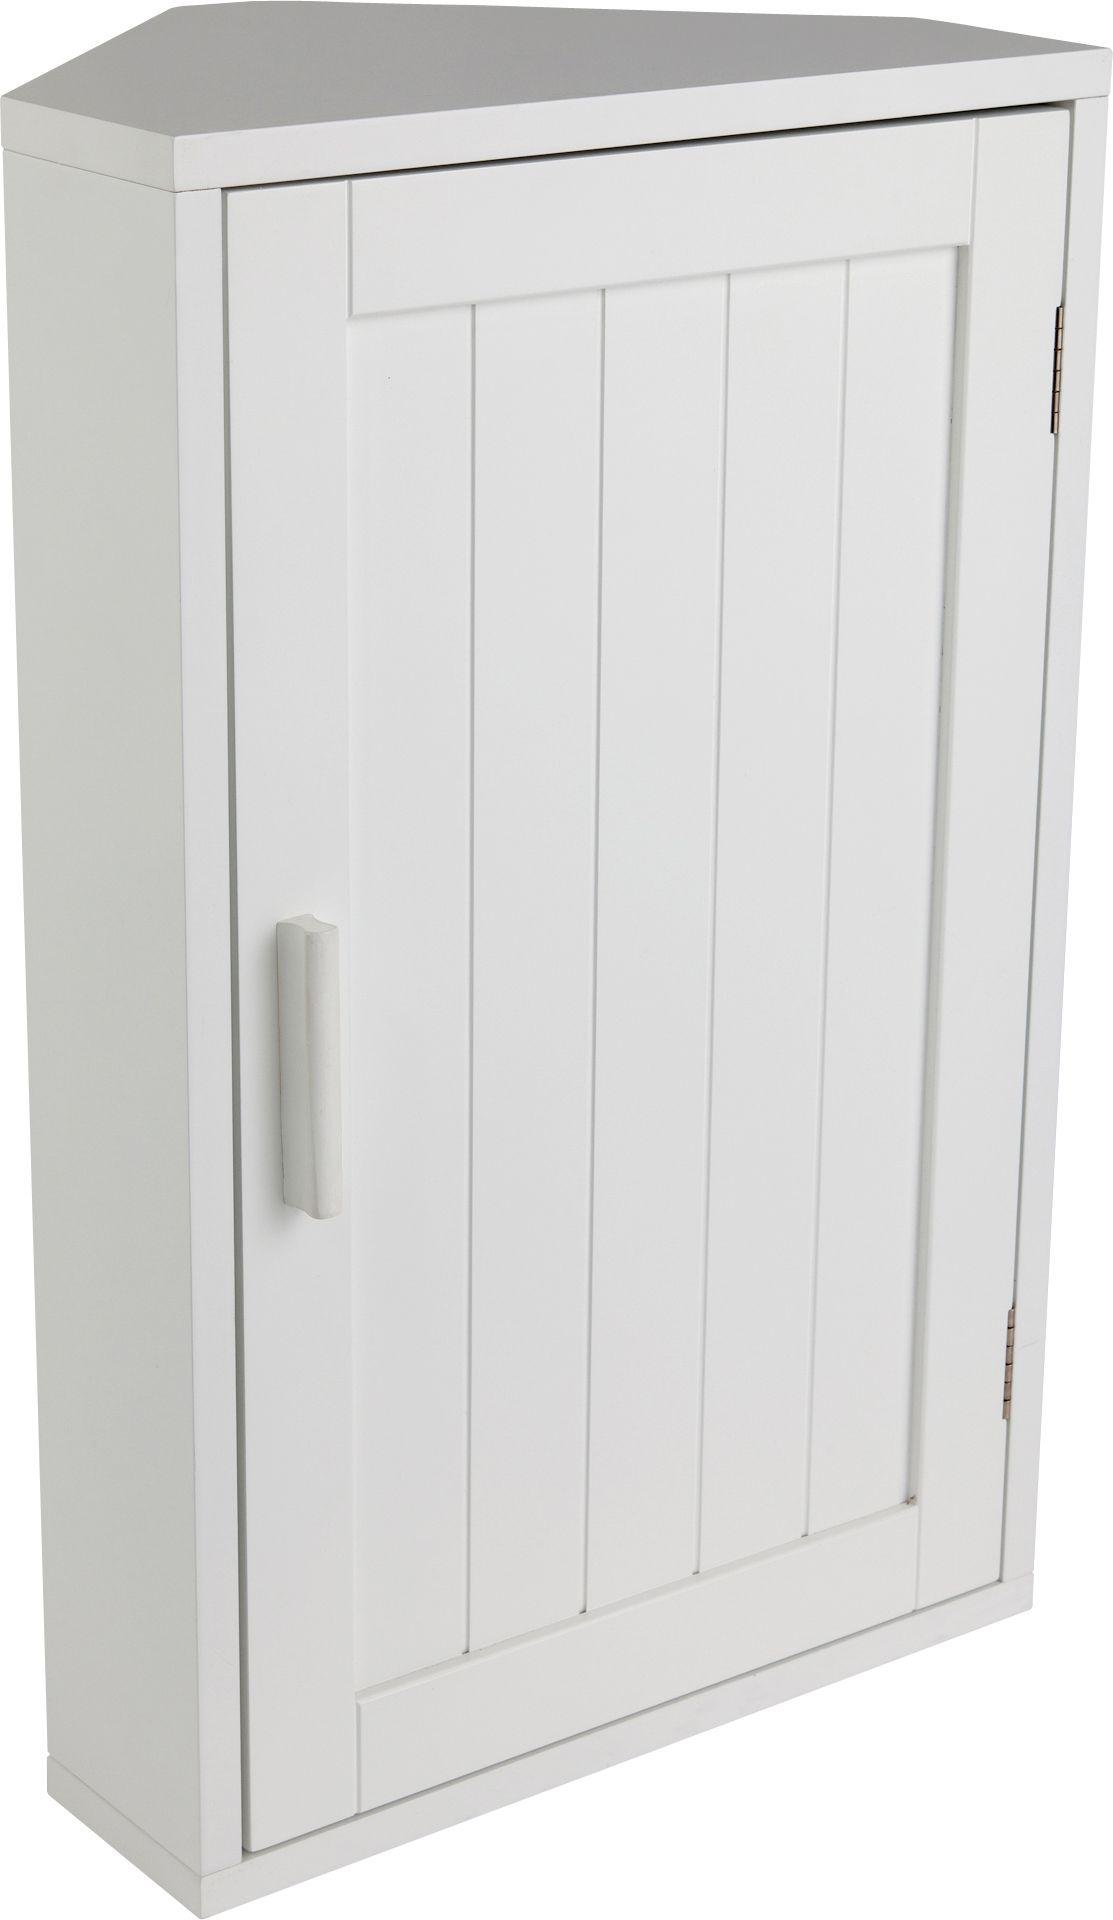 bathroom cupboard images. home wooden corner bathroom cabinet - white cupboard images